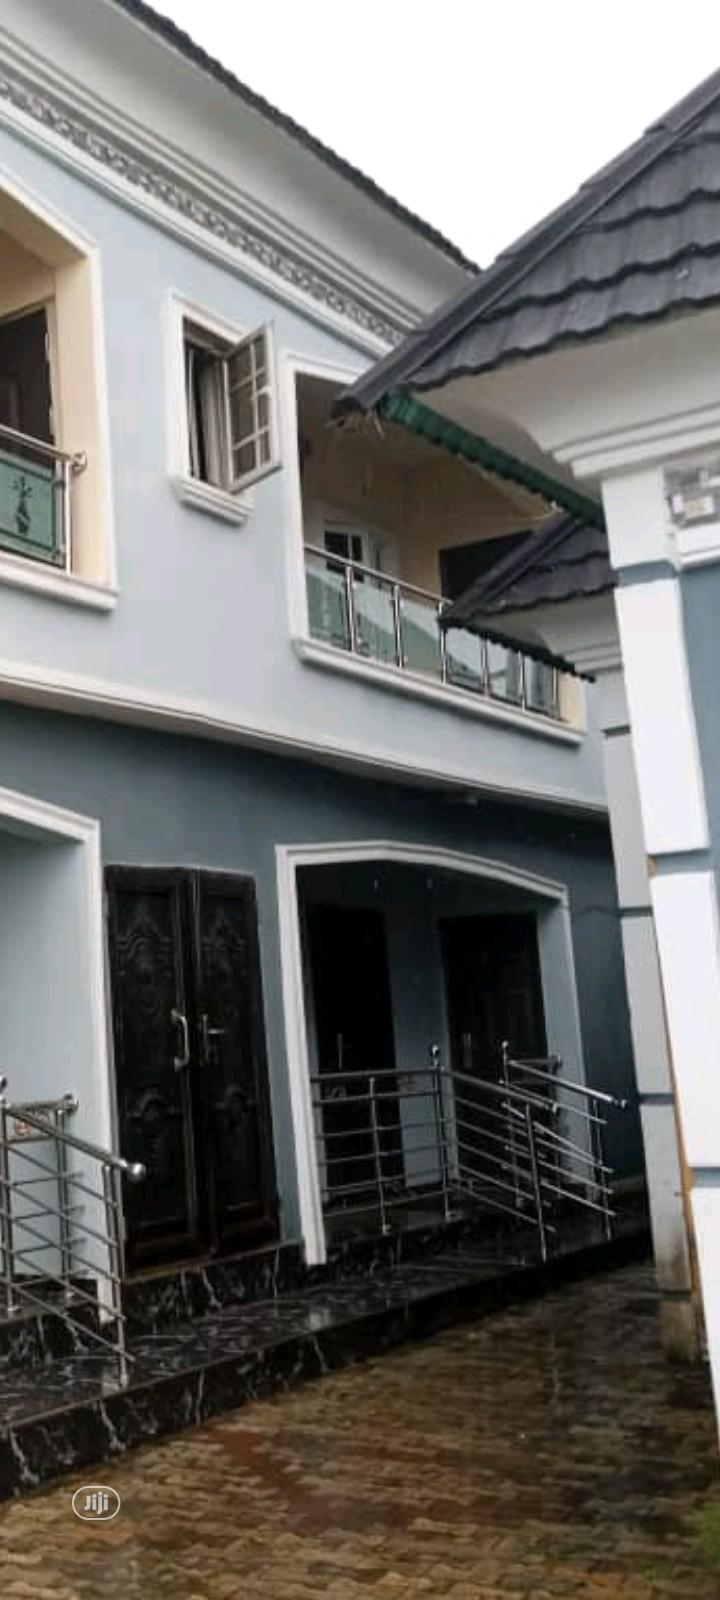 4flats of 3bedroom Flat With a Furnished Bungalow for Sale | Houses & Apartments For Sale for sale in Benin City, Edo State, Nigeria